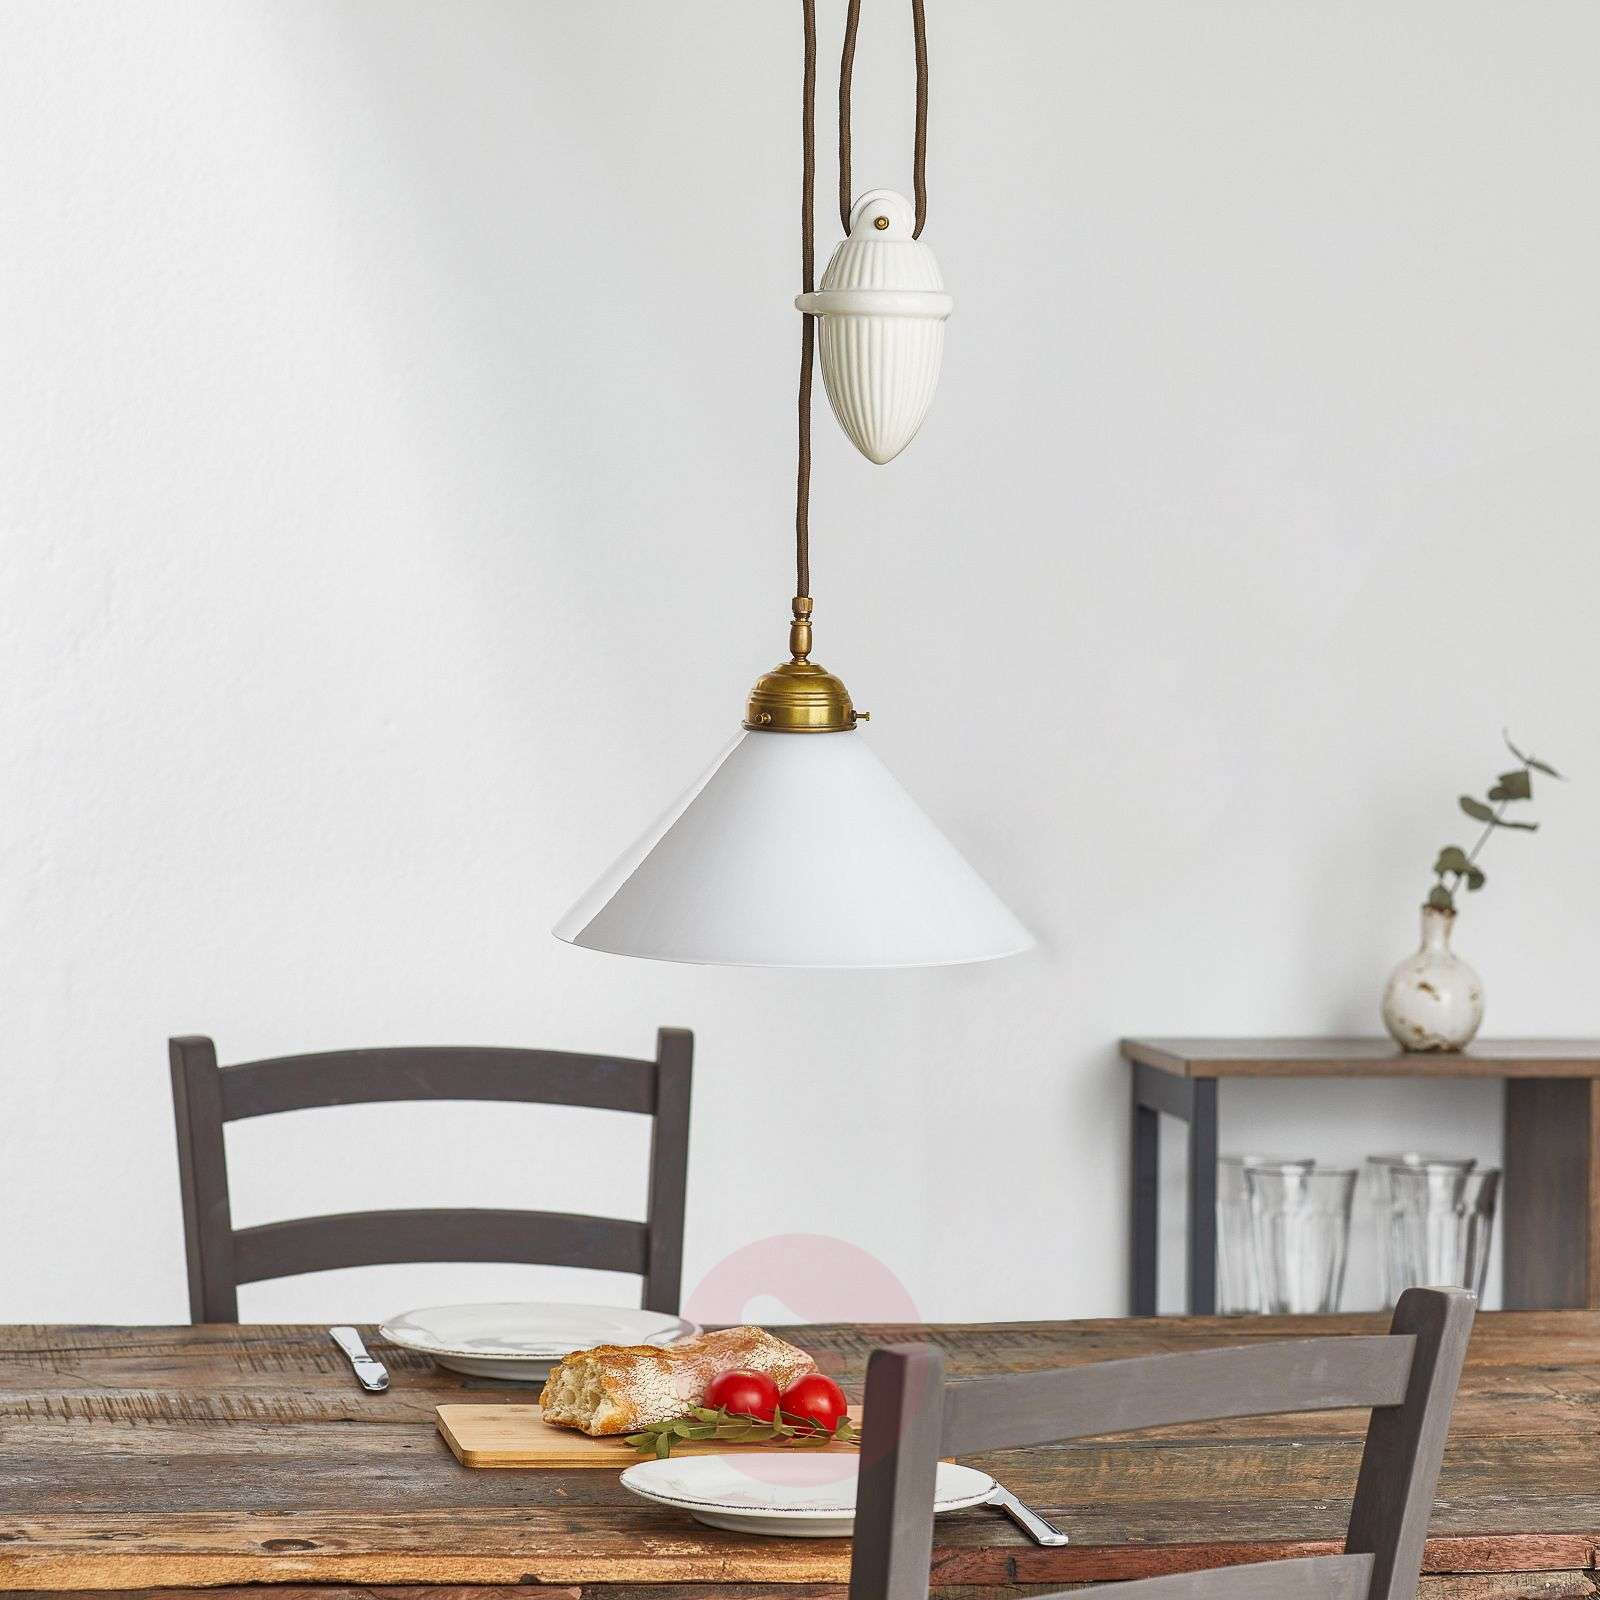 HELENE hanging light with rise and fall mechanism-1542022-01